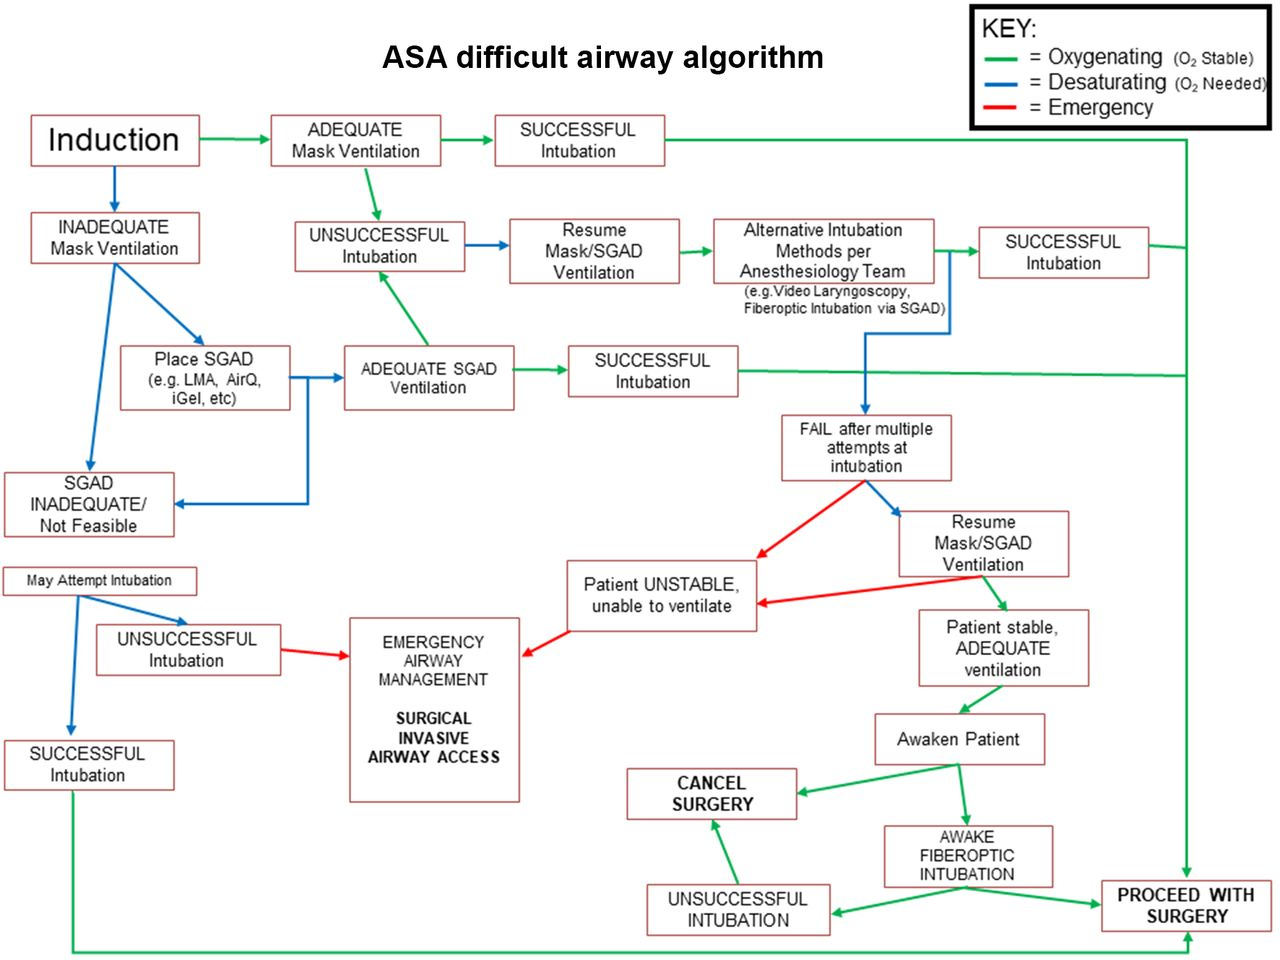 Life-threatening perioperative anesthetic complications